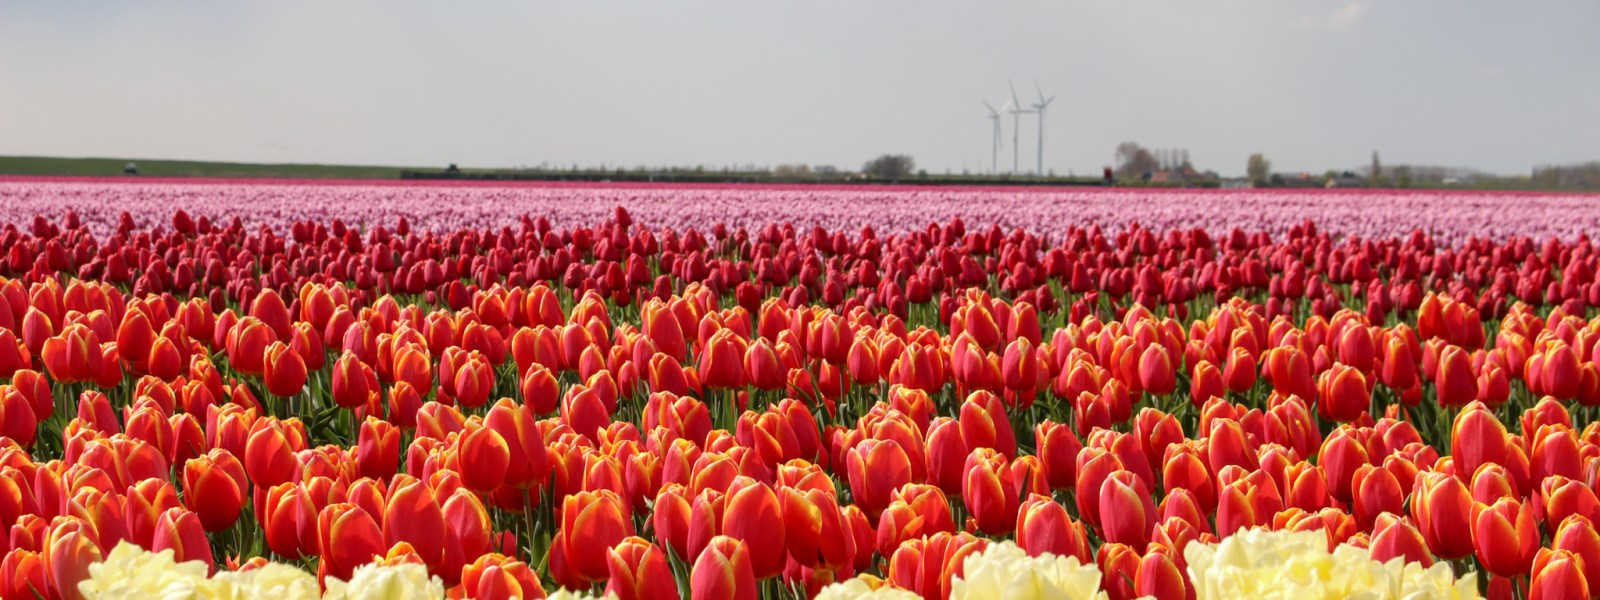 The Dutch tulip fields in pictures